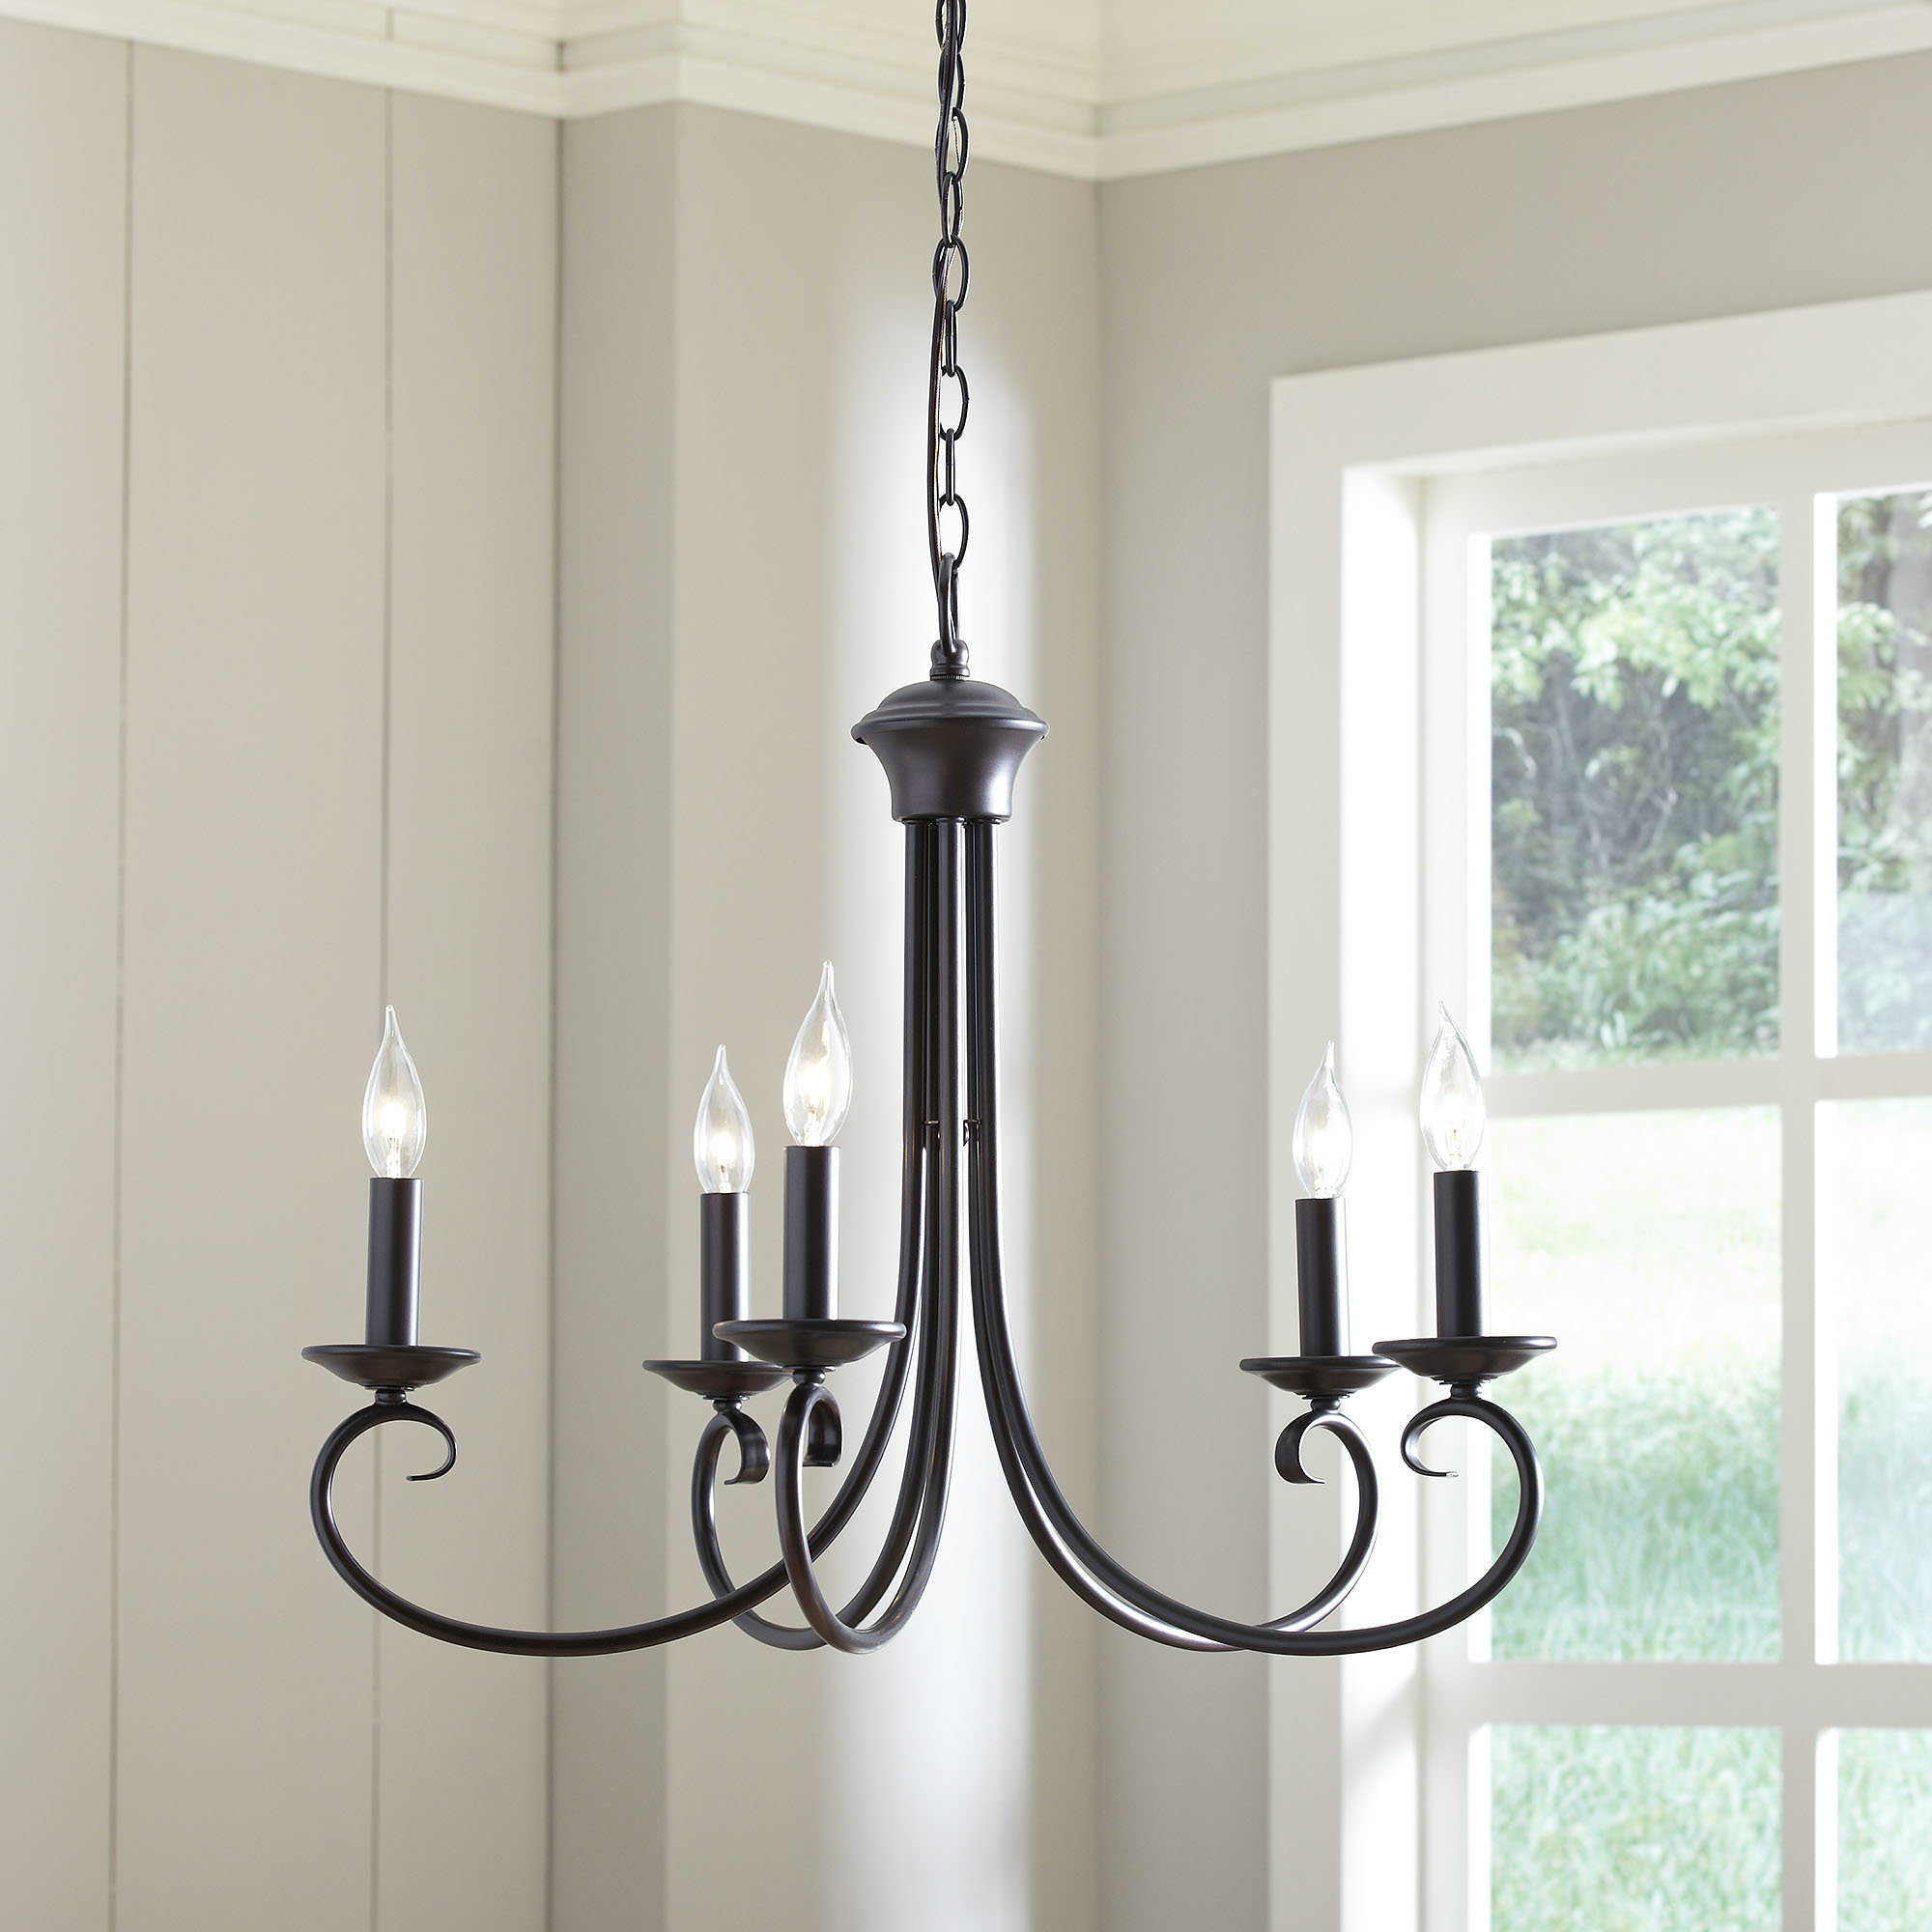 2020 Shaylee 8 Light Candle Style Chandeliers Within Edgell 5 Light Candle Style Chandelier (View 5 of 25)